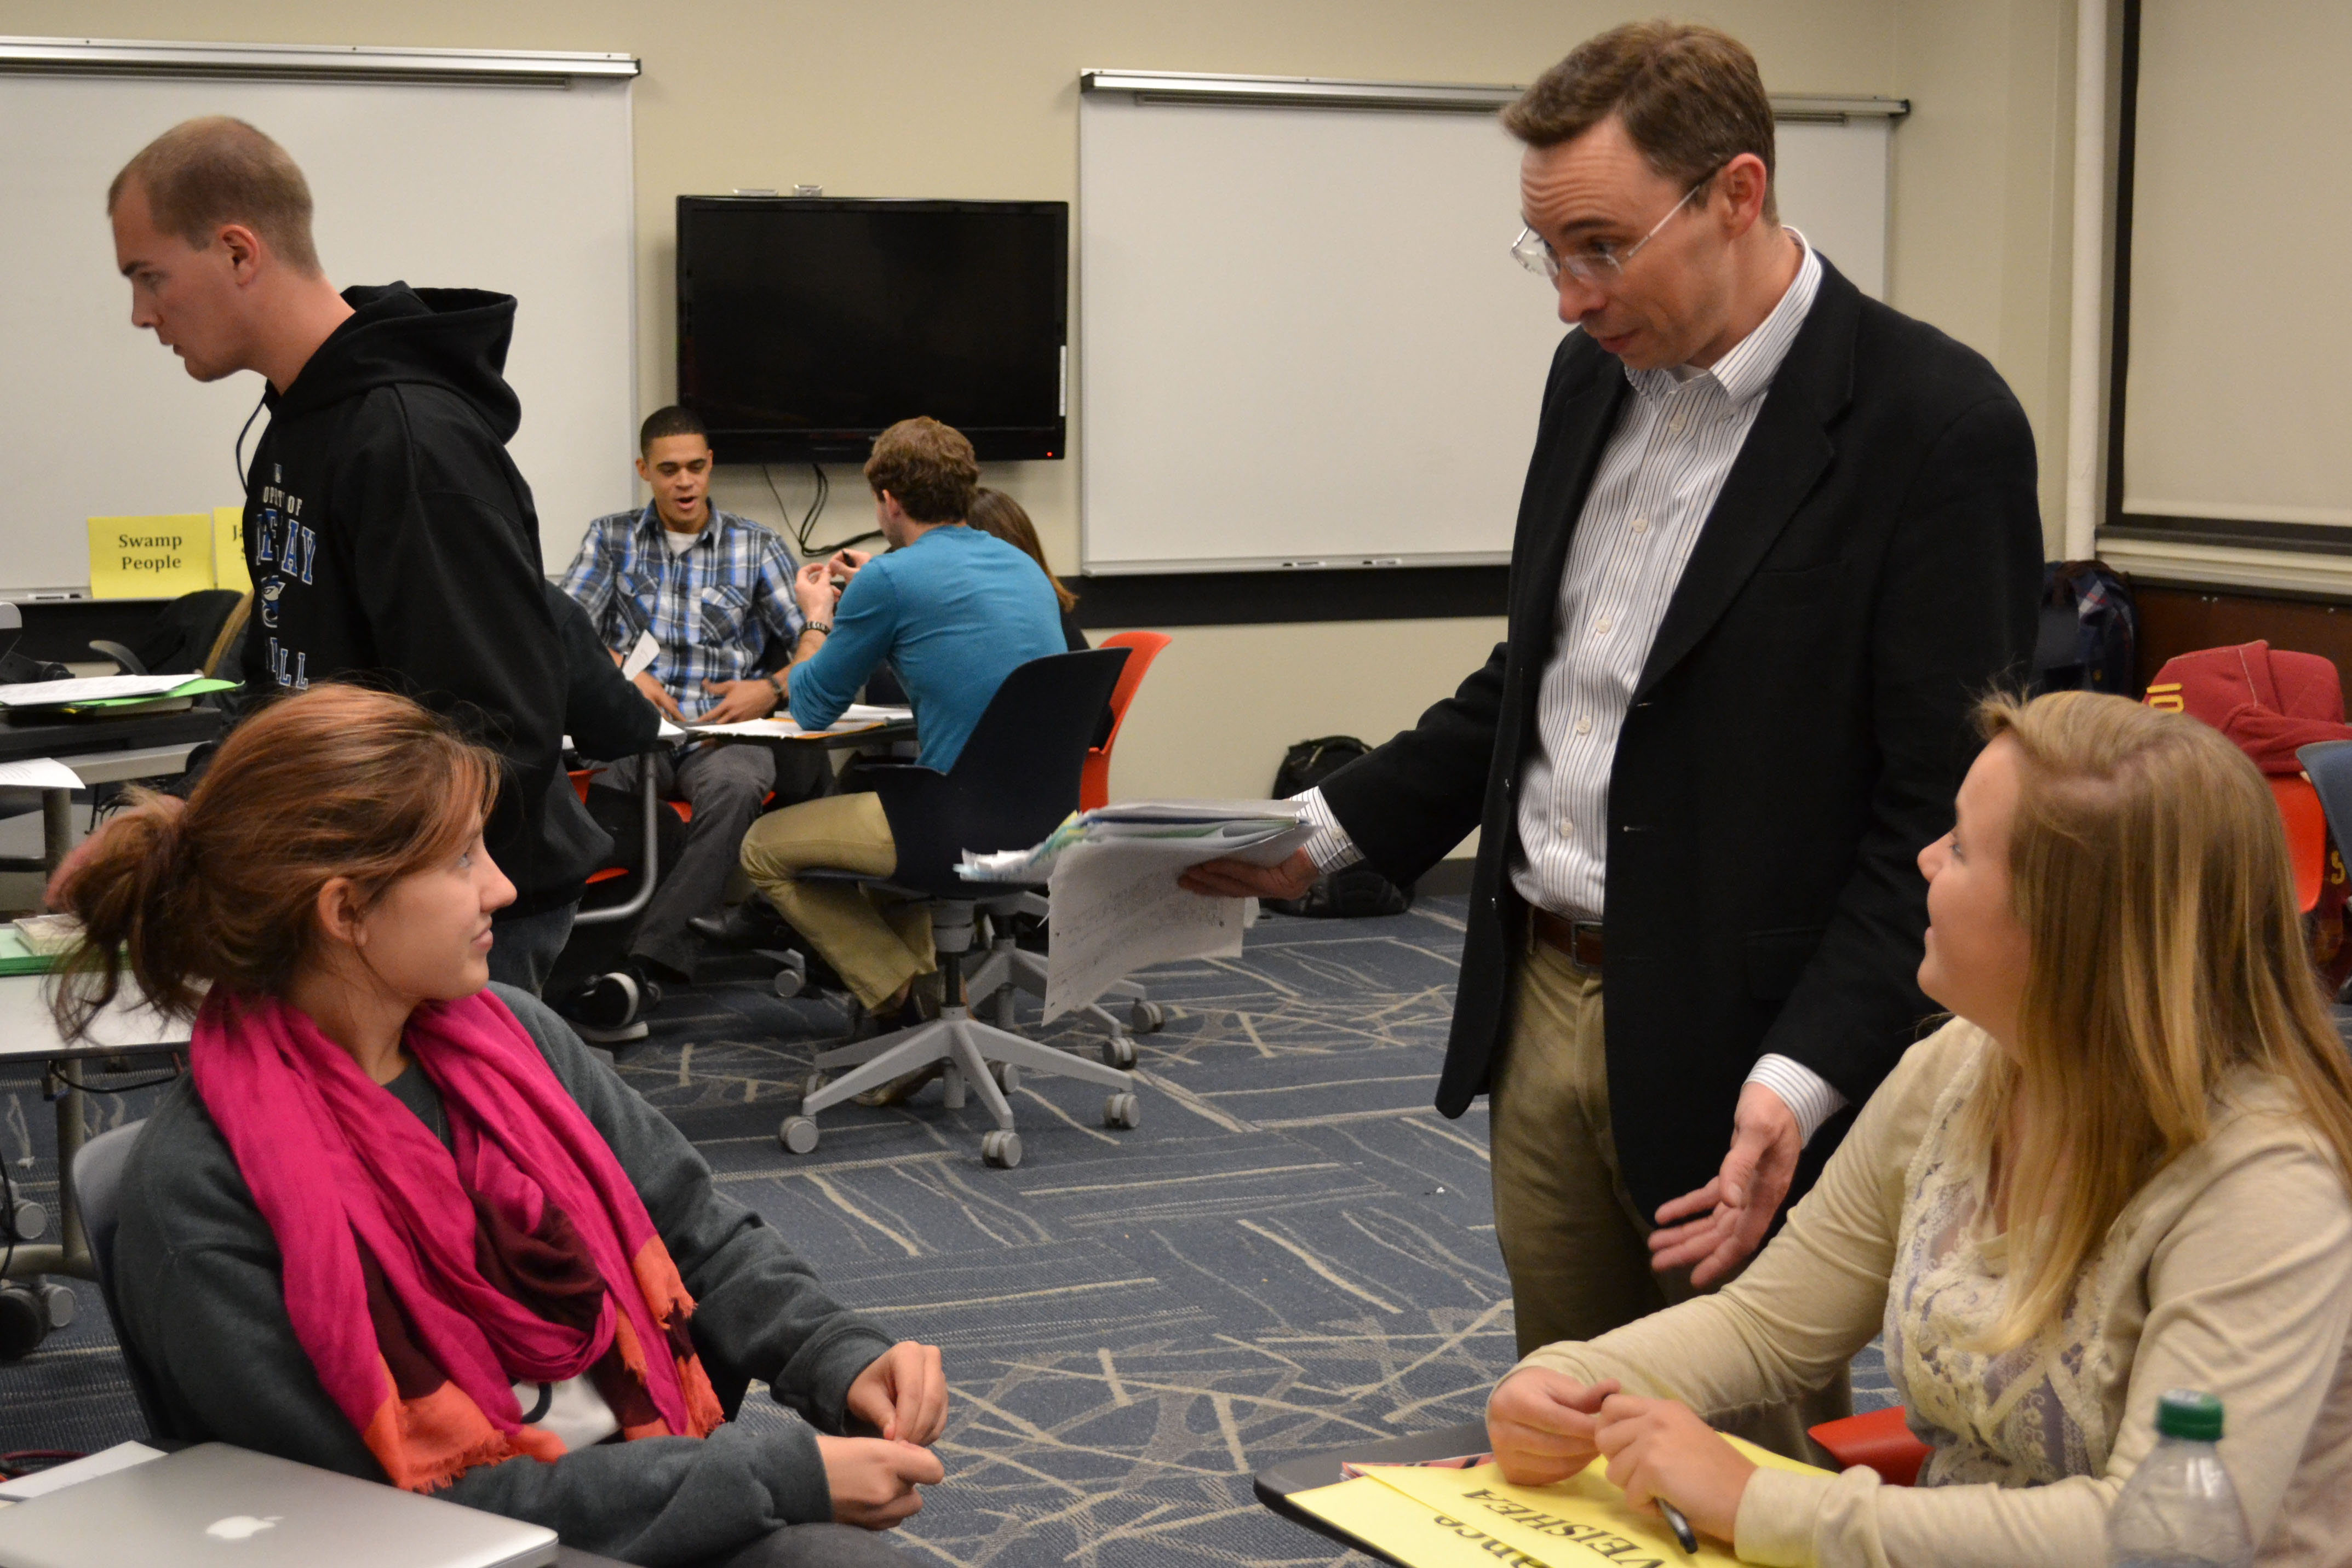 LAS 322 students discuss leadership styles with instructor Clint Stephens.